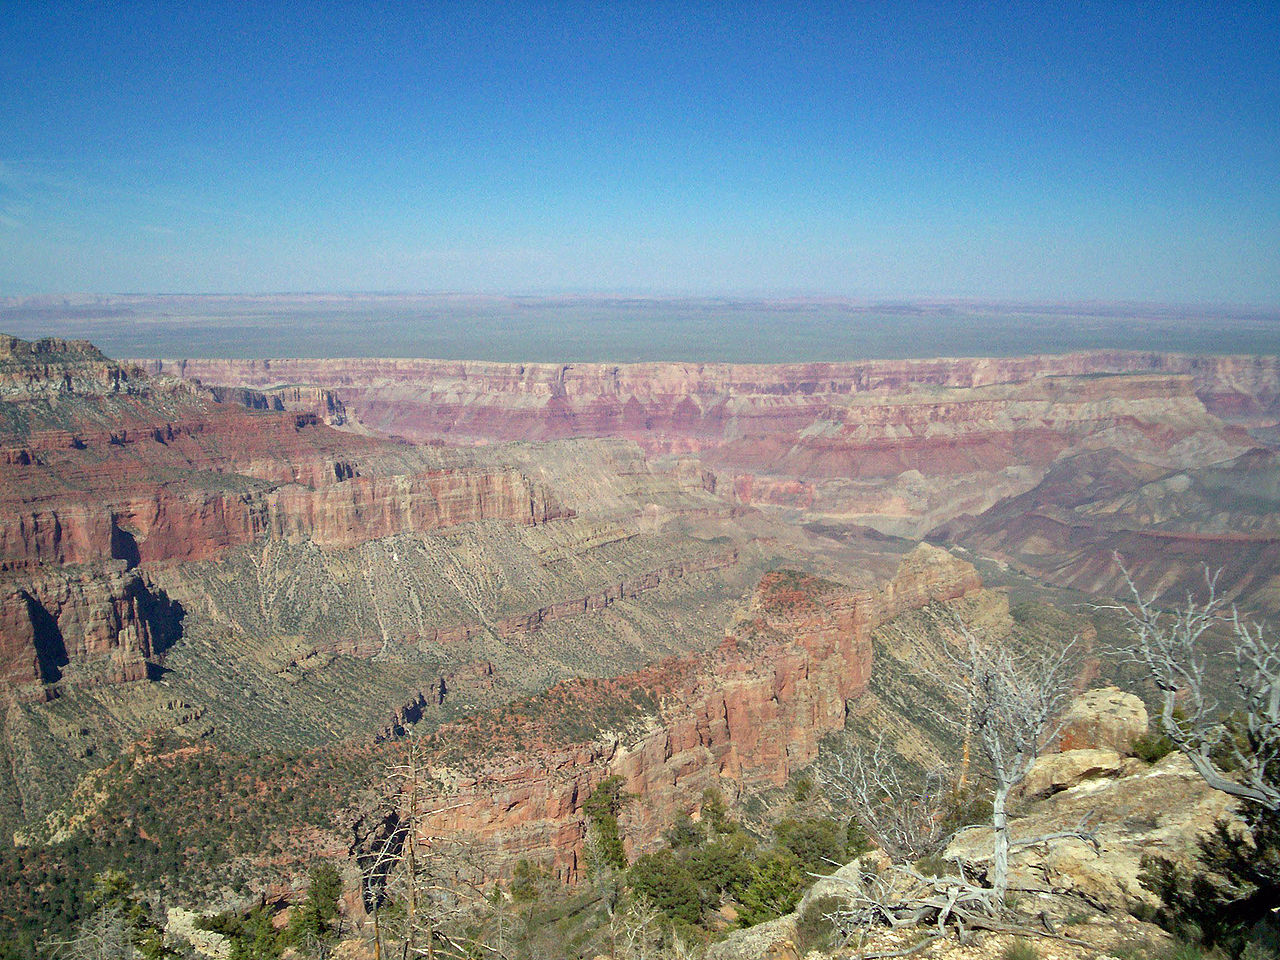 an introduction to the grand canyon national park in the united states 806 reviews of grand canyon national park truly one of the 7 wonders of the world grand canyon, az 86023 united states phone number +1-928-638-7888.